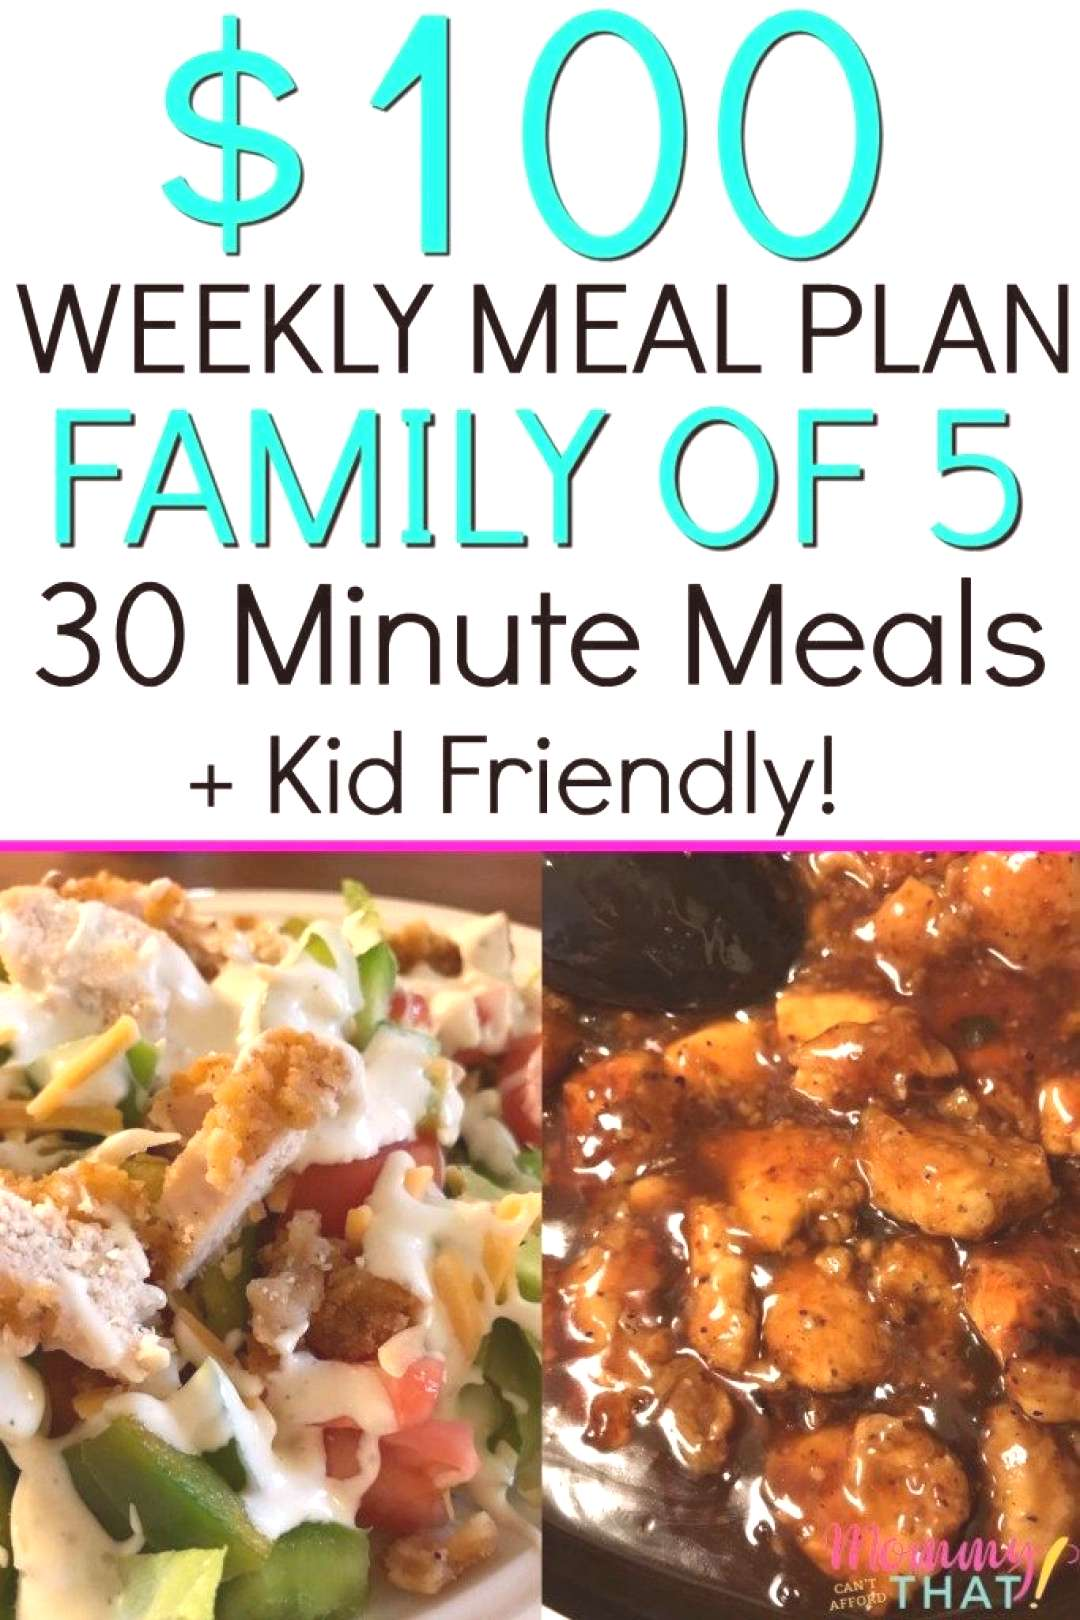 Meal planning on a budget for a family of 5. Links to recipes, grocery list and prices included. Ki